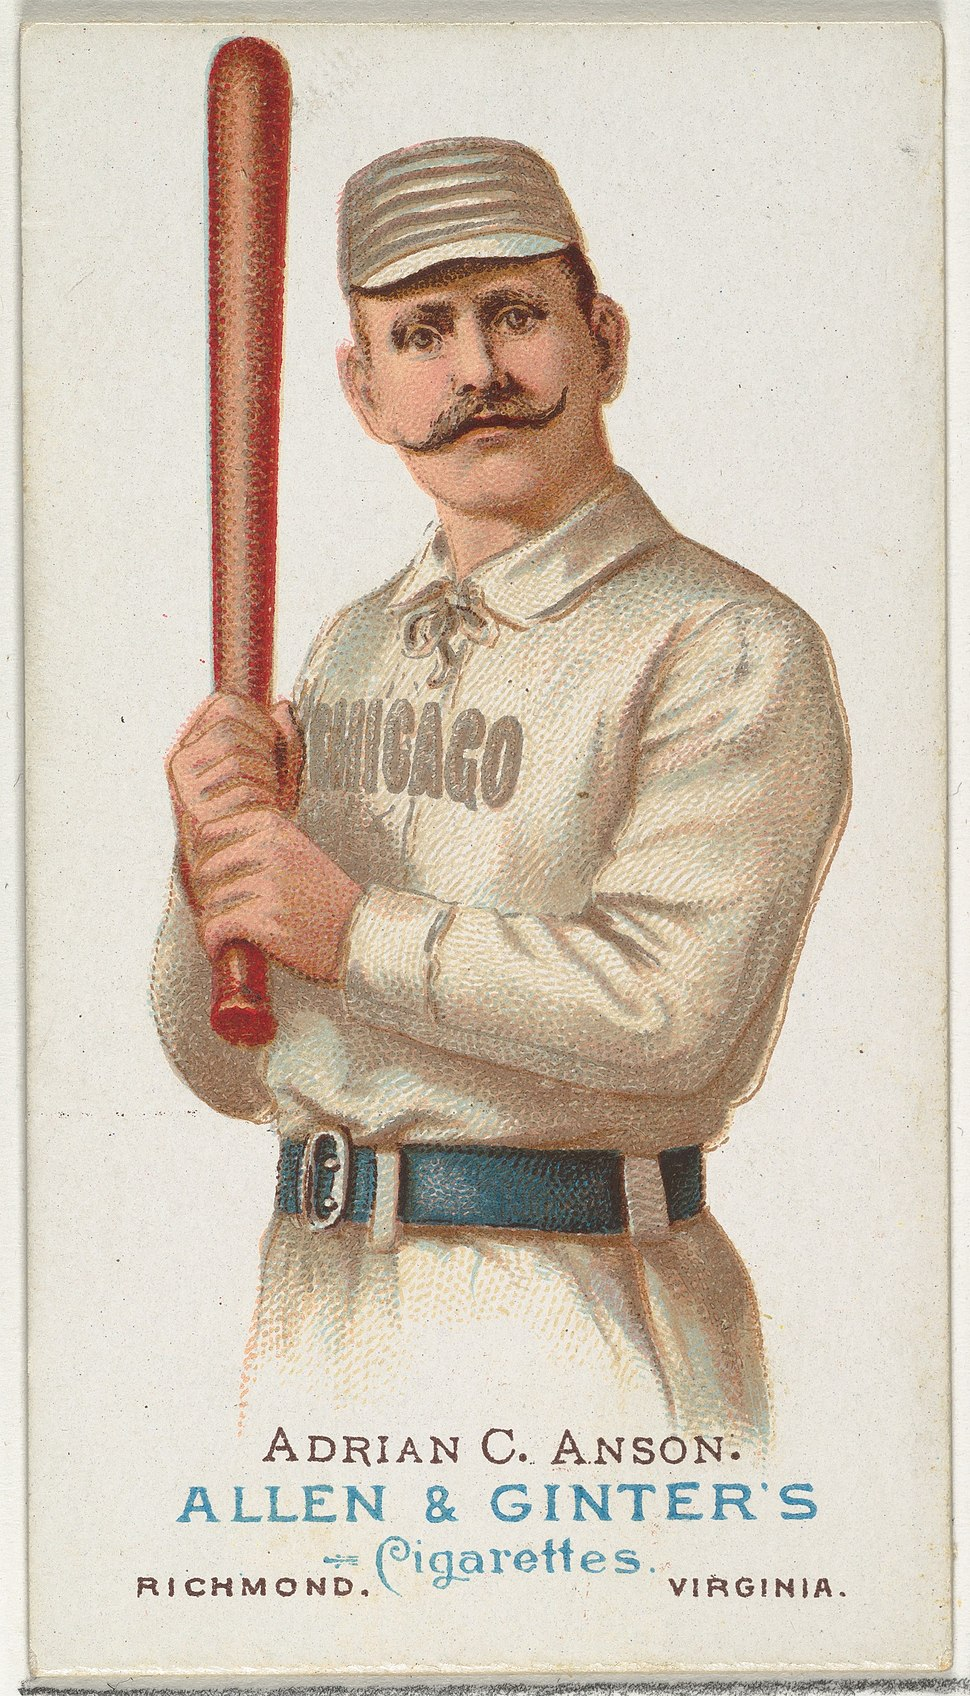 """Adrian """"Cap"""" Anson, Baseball Player, from World's Champions, Series 1 (N28) for Allen & Ginter Cigarettes MET DP838205"""